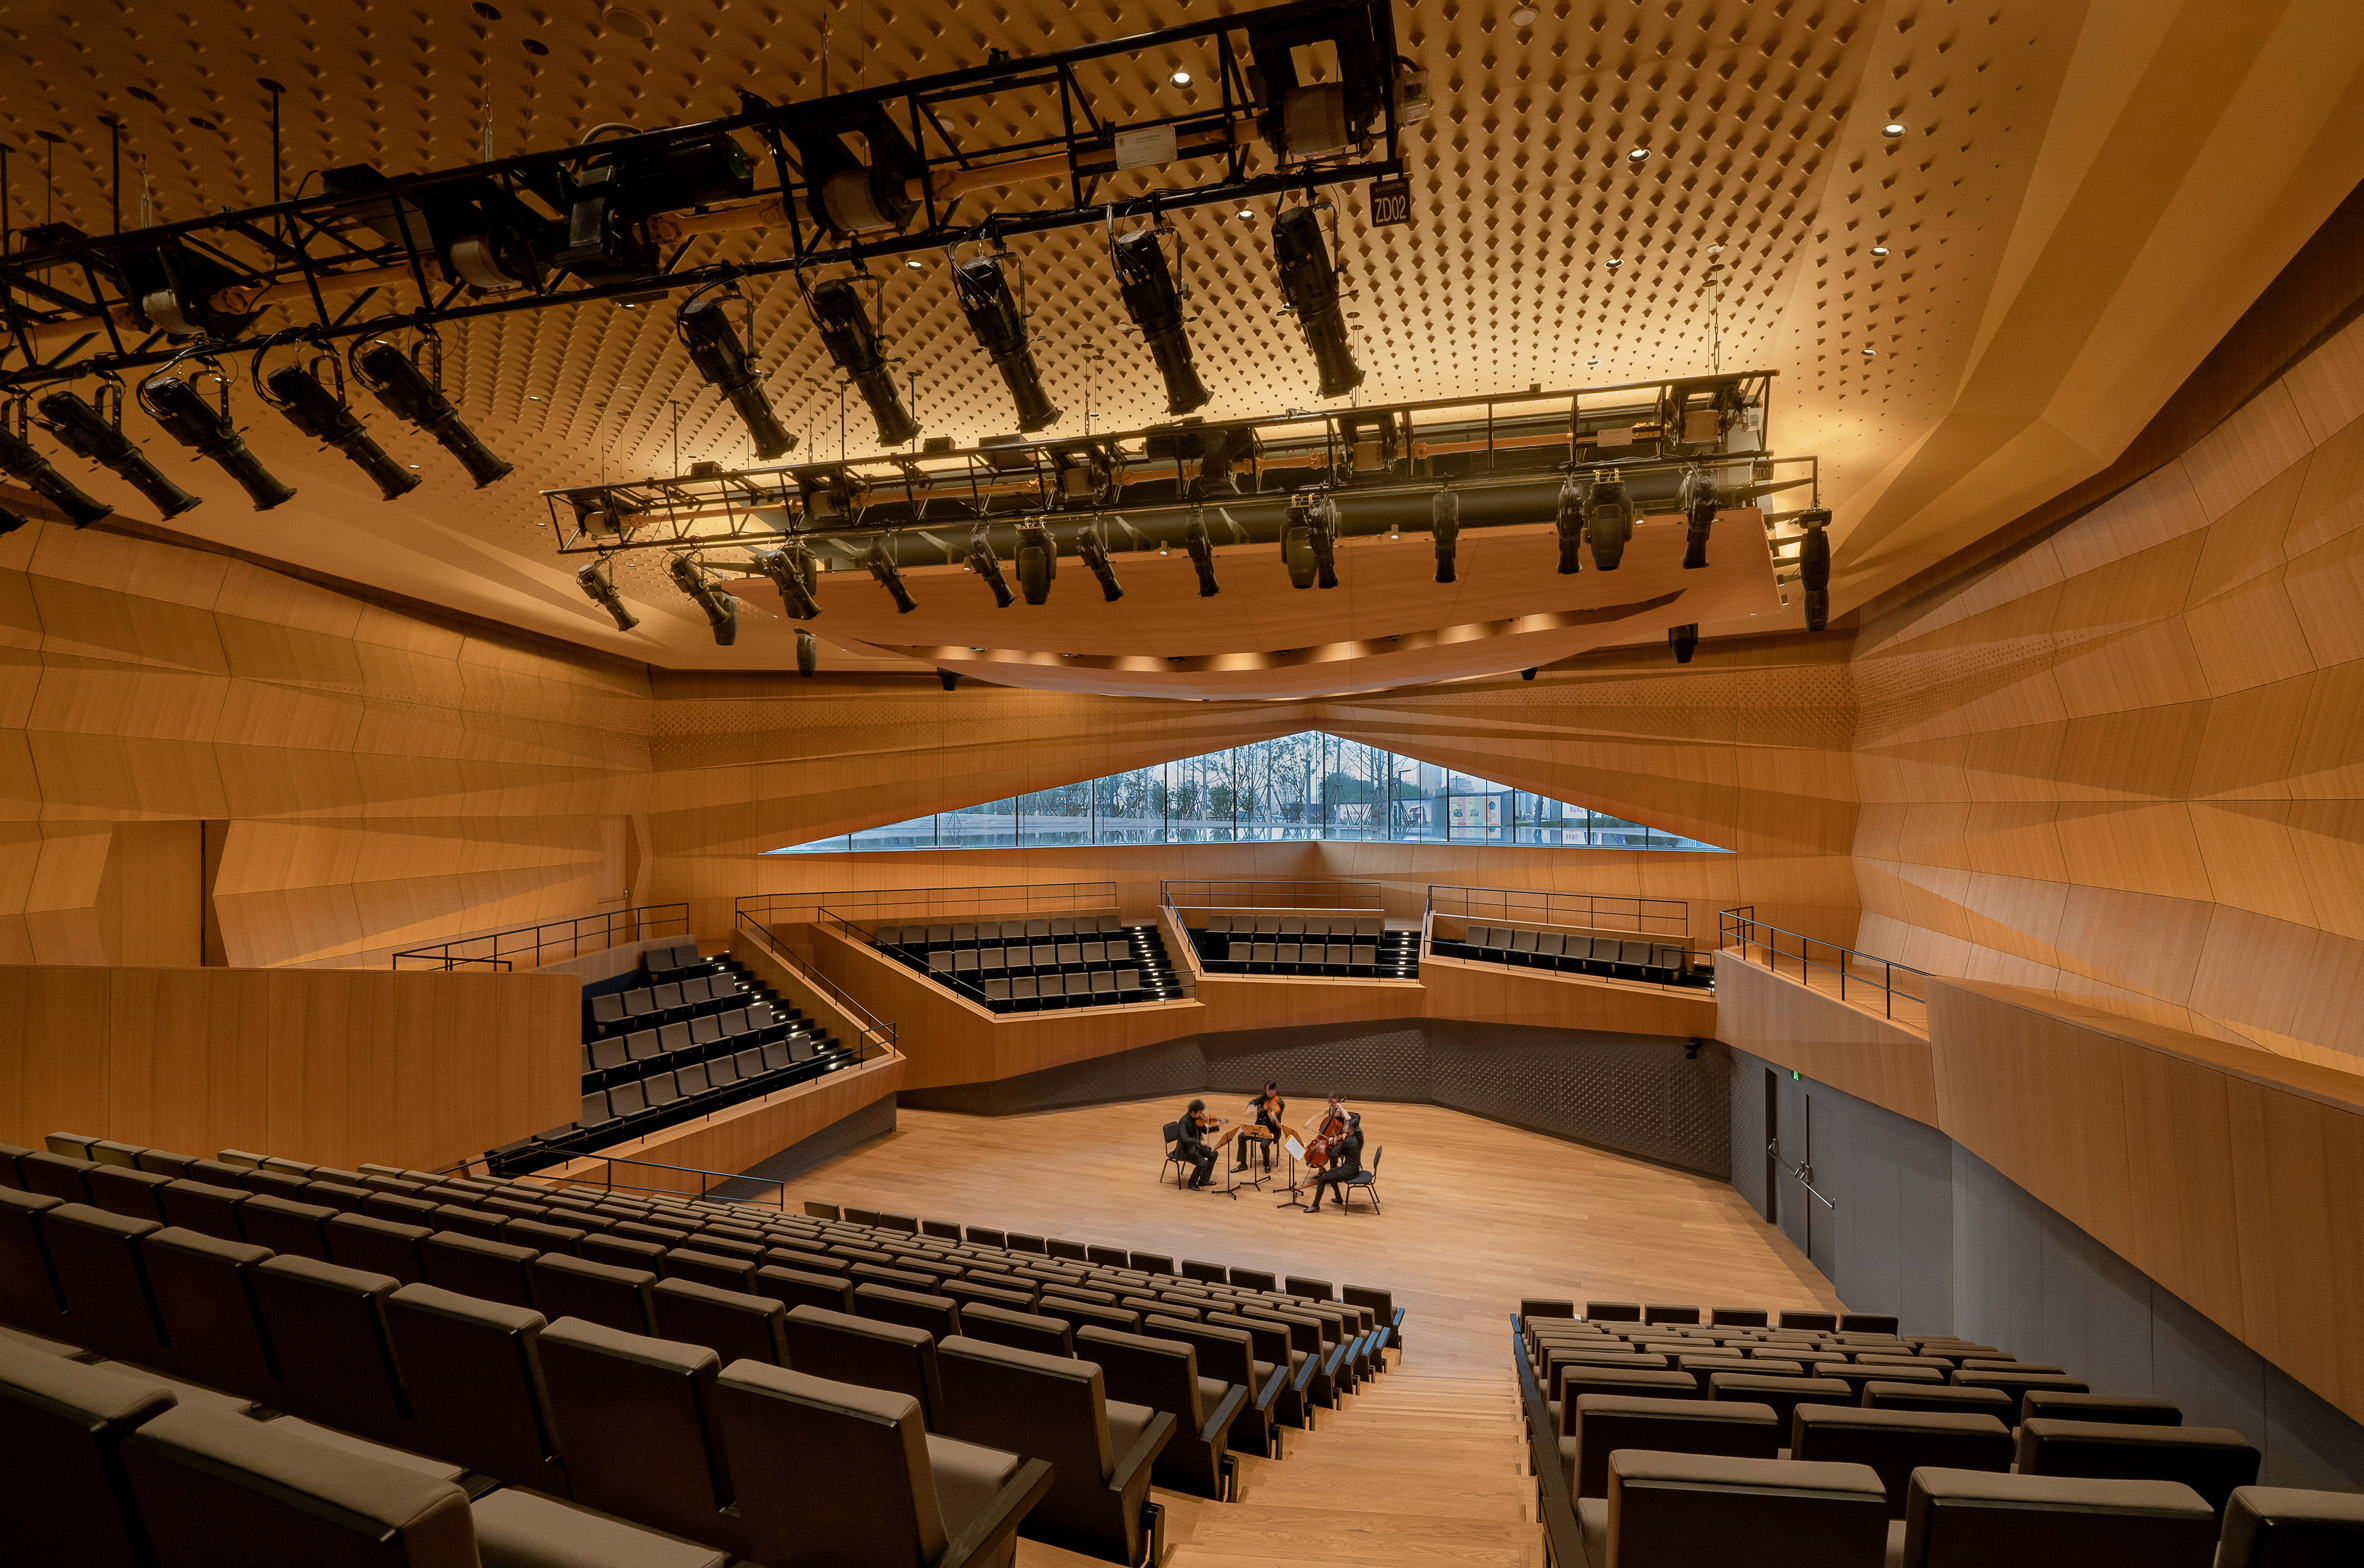 A wooden recital hall in China